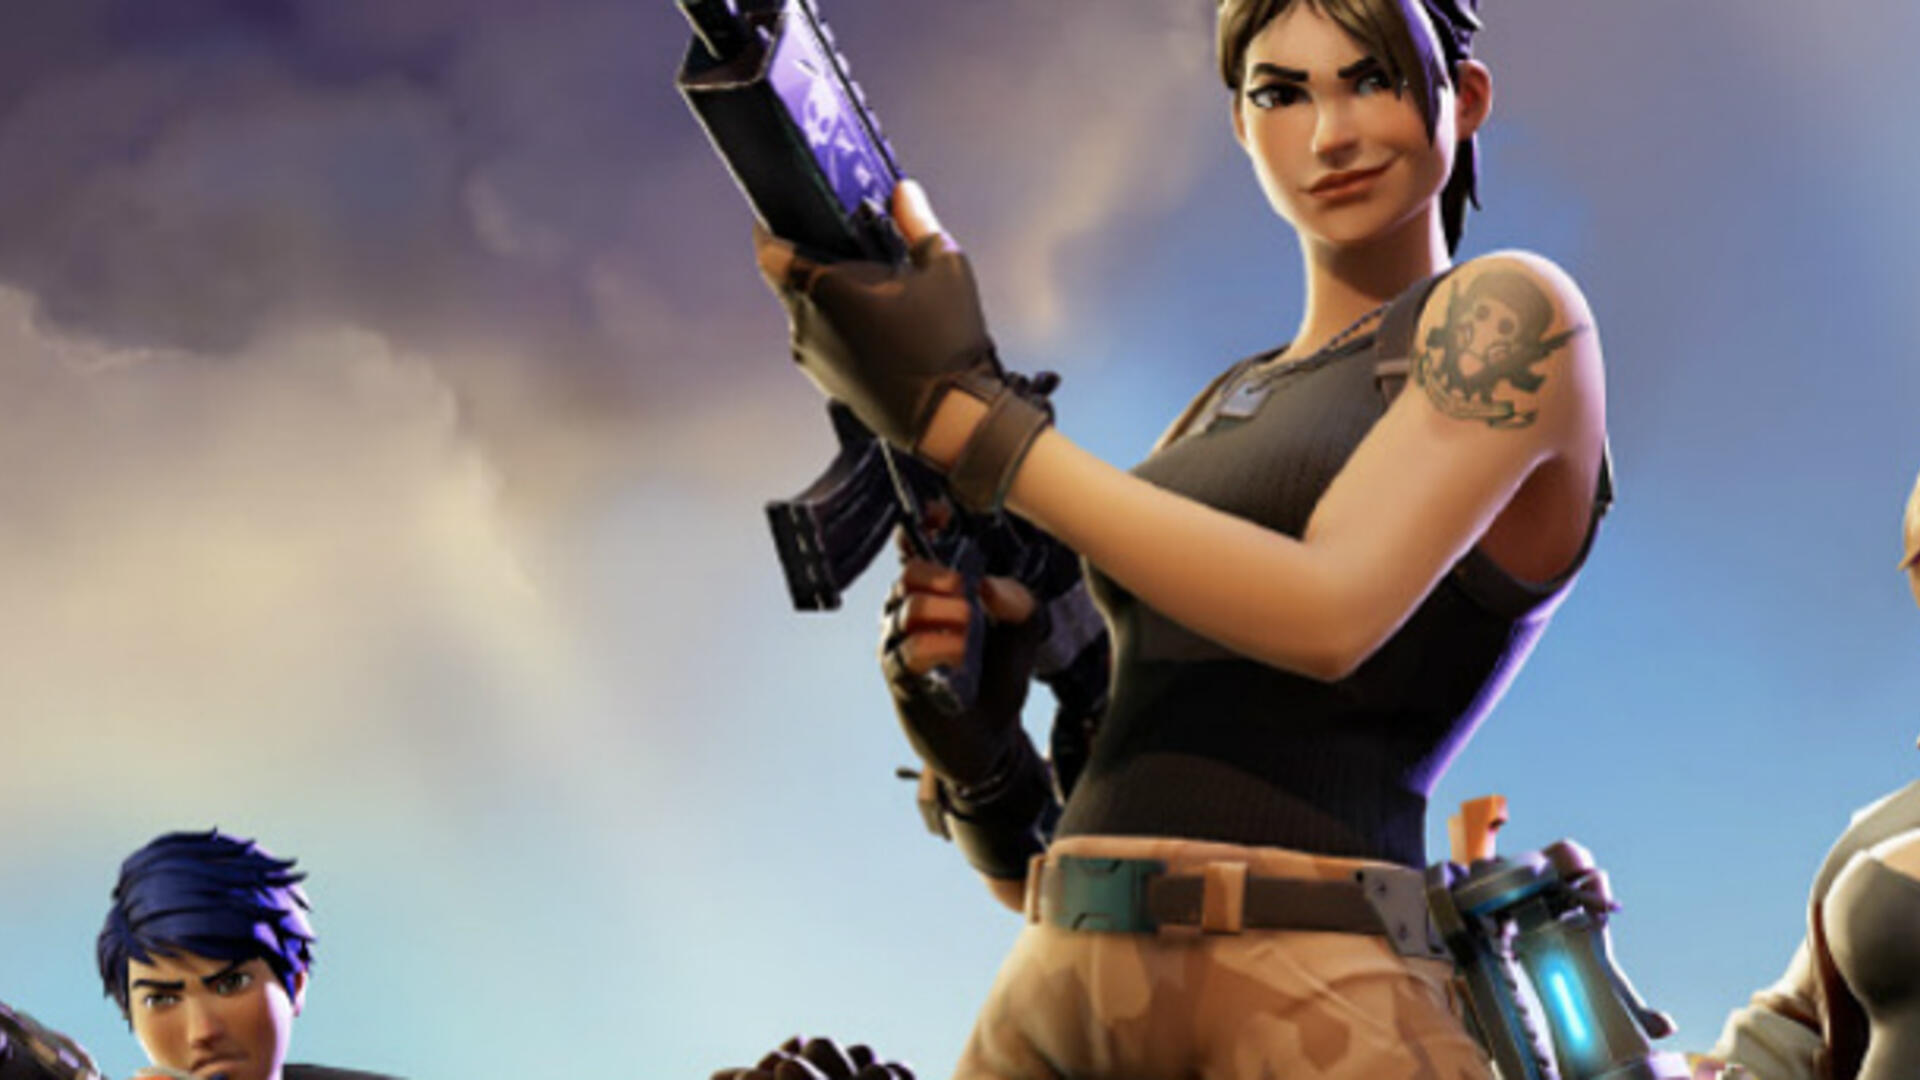 Ps4 Fortnite Finally Supports Cross Play With Switch And